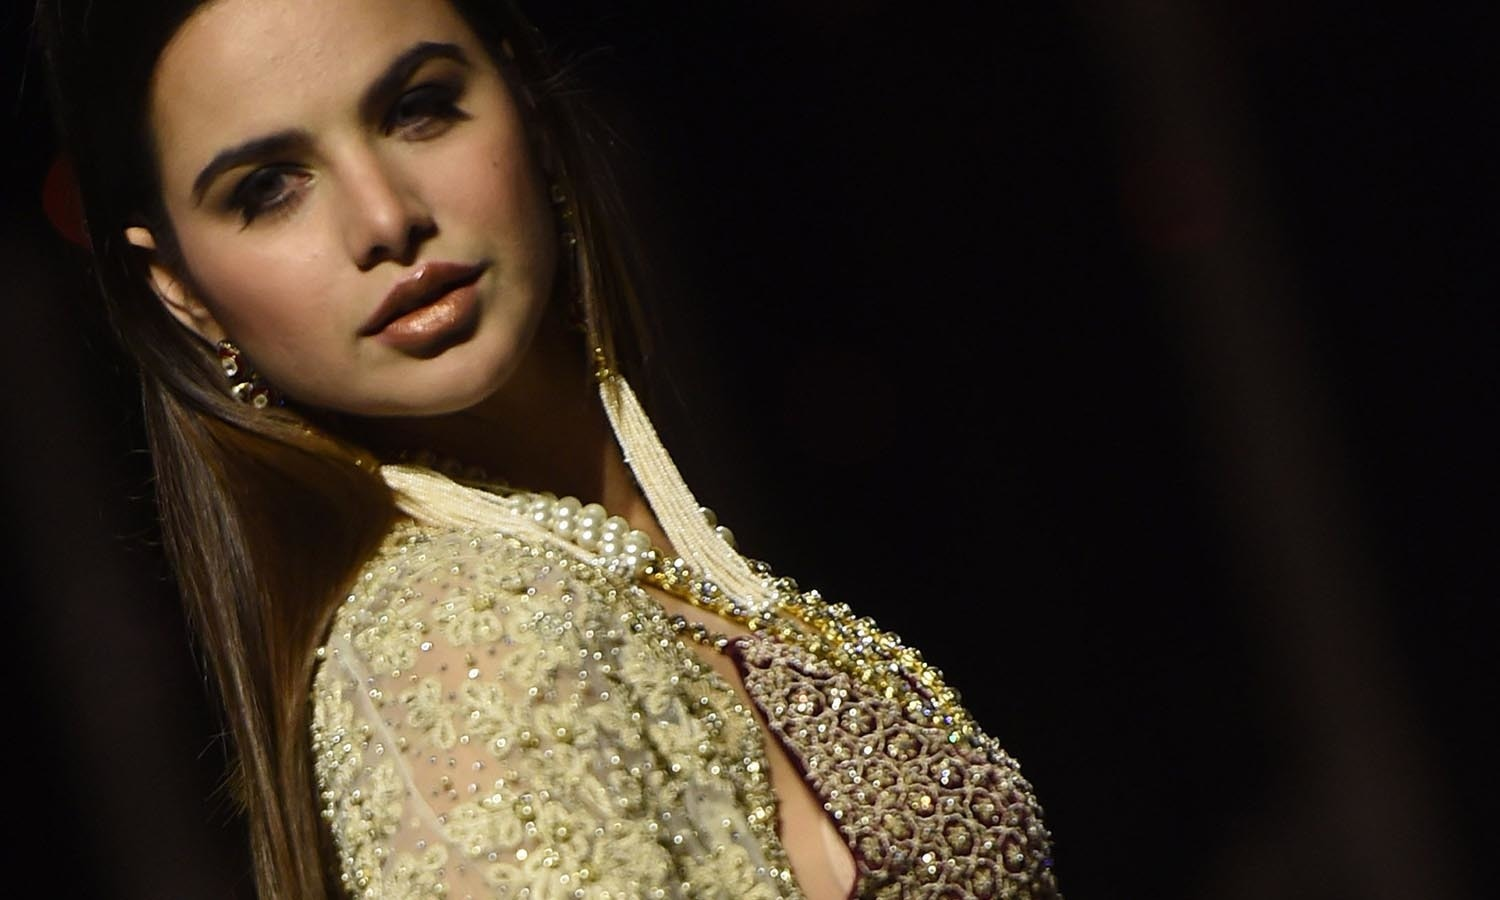 A model presents a creation by designer Shehla on the first day of the Pakistan Fashion Week in Karachi. — AFP